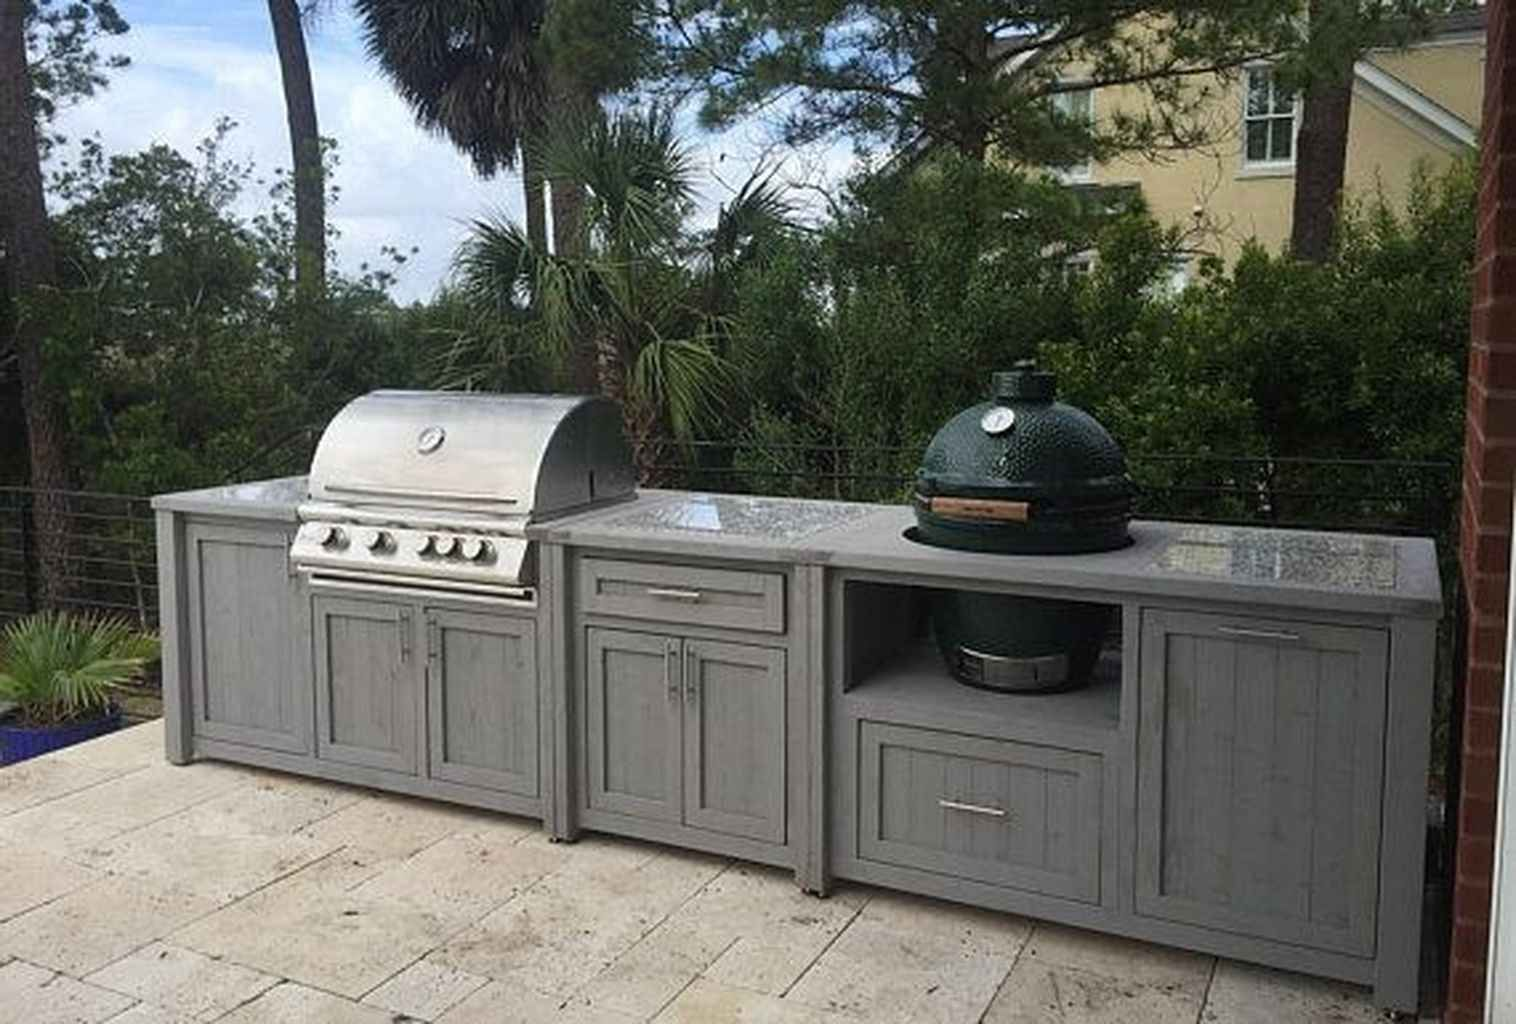 01 Best Outdoor Kitchen And Grill Ideas For Summer Backyard Barbeque Grill Table Outdoor Grill Outdoor Kitchen Design